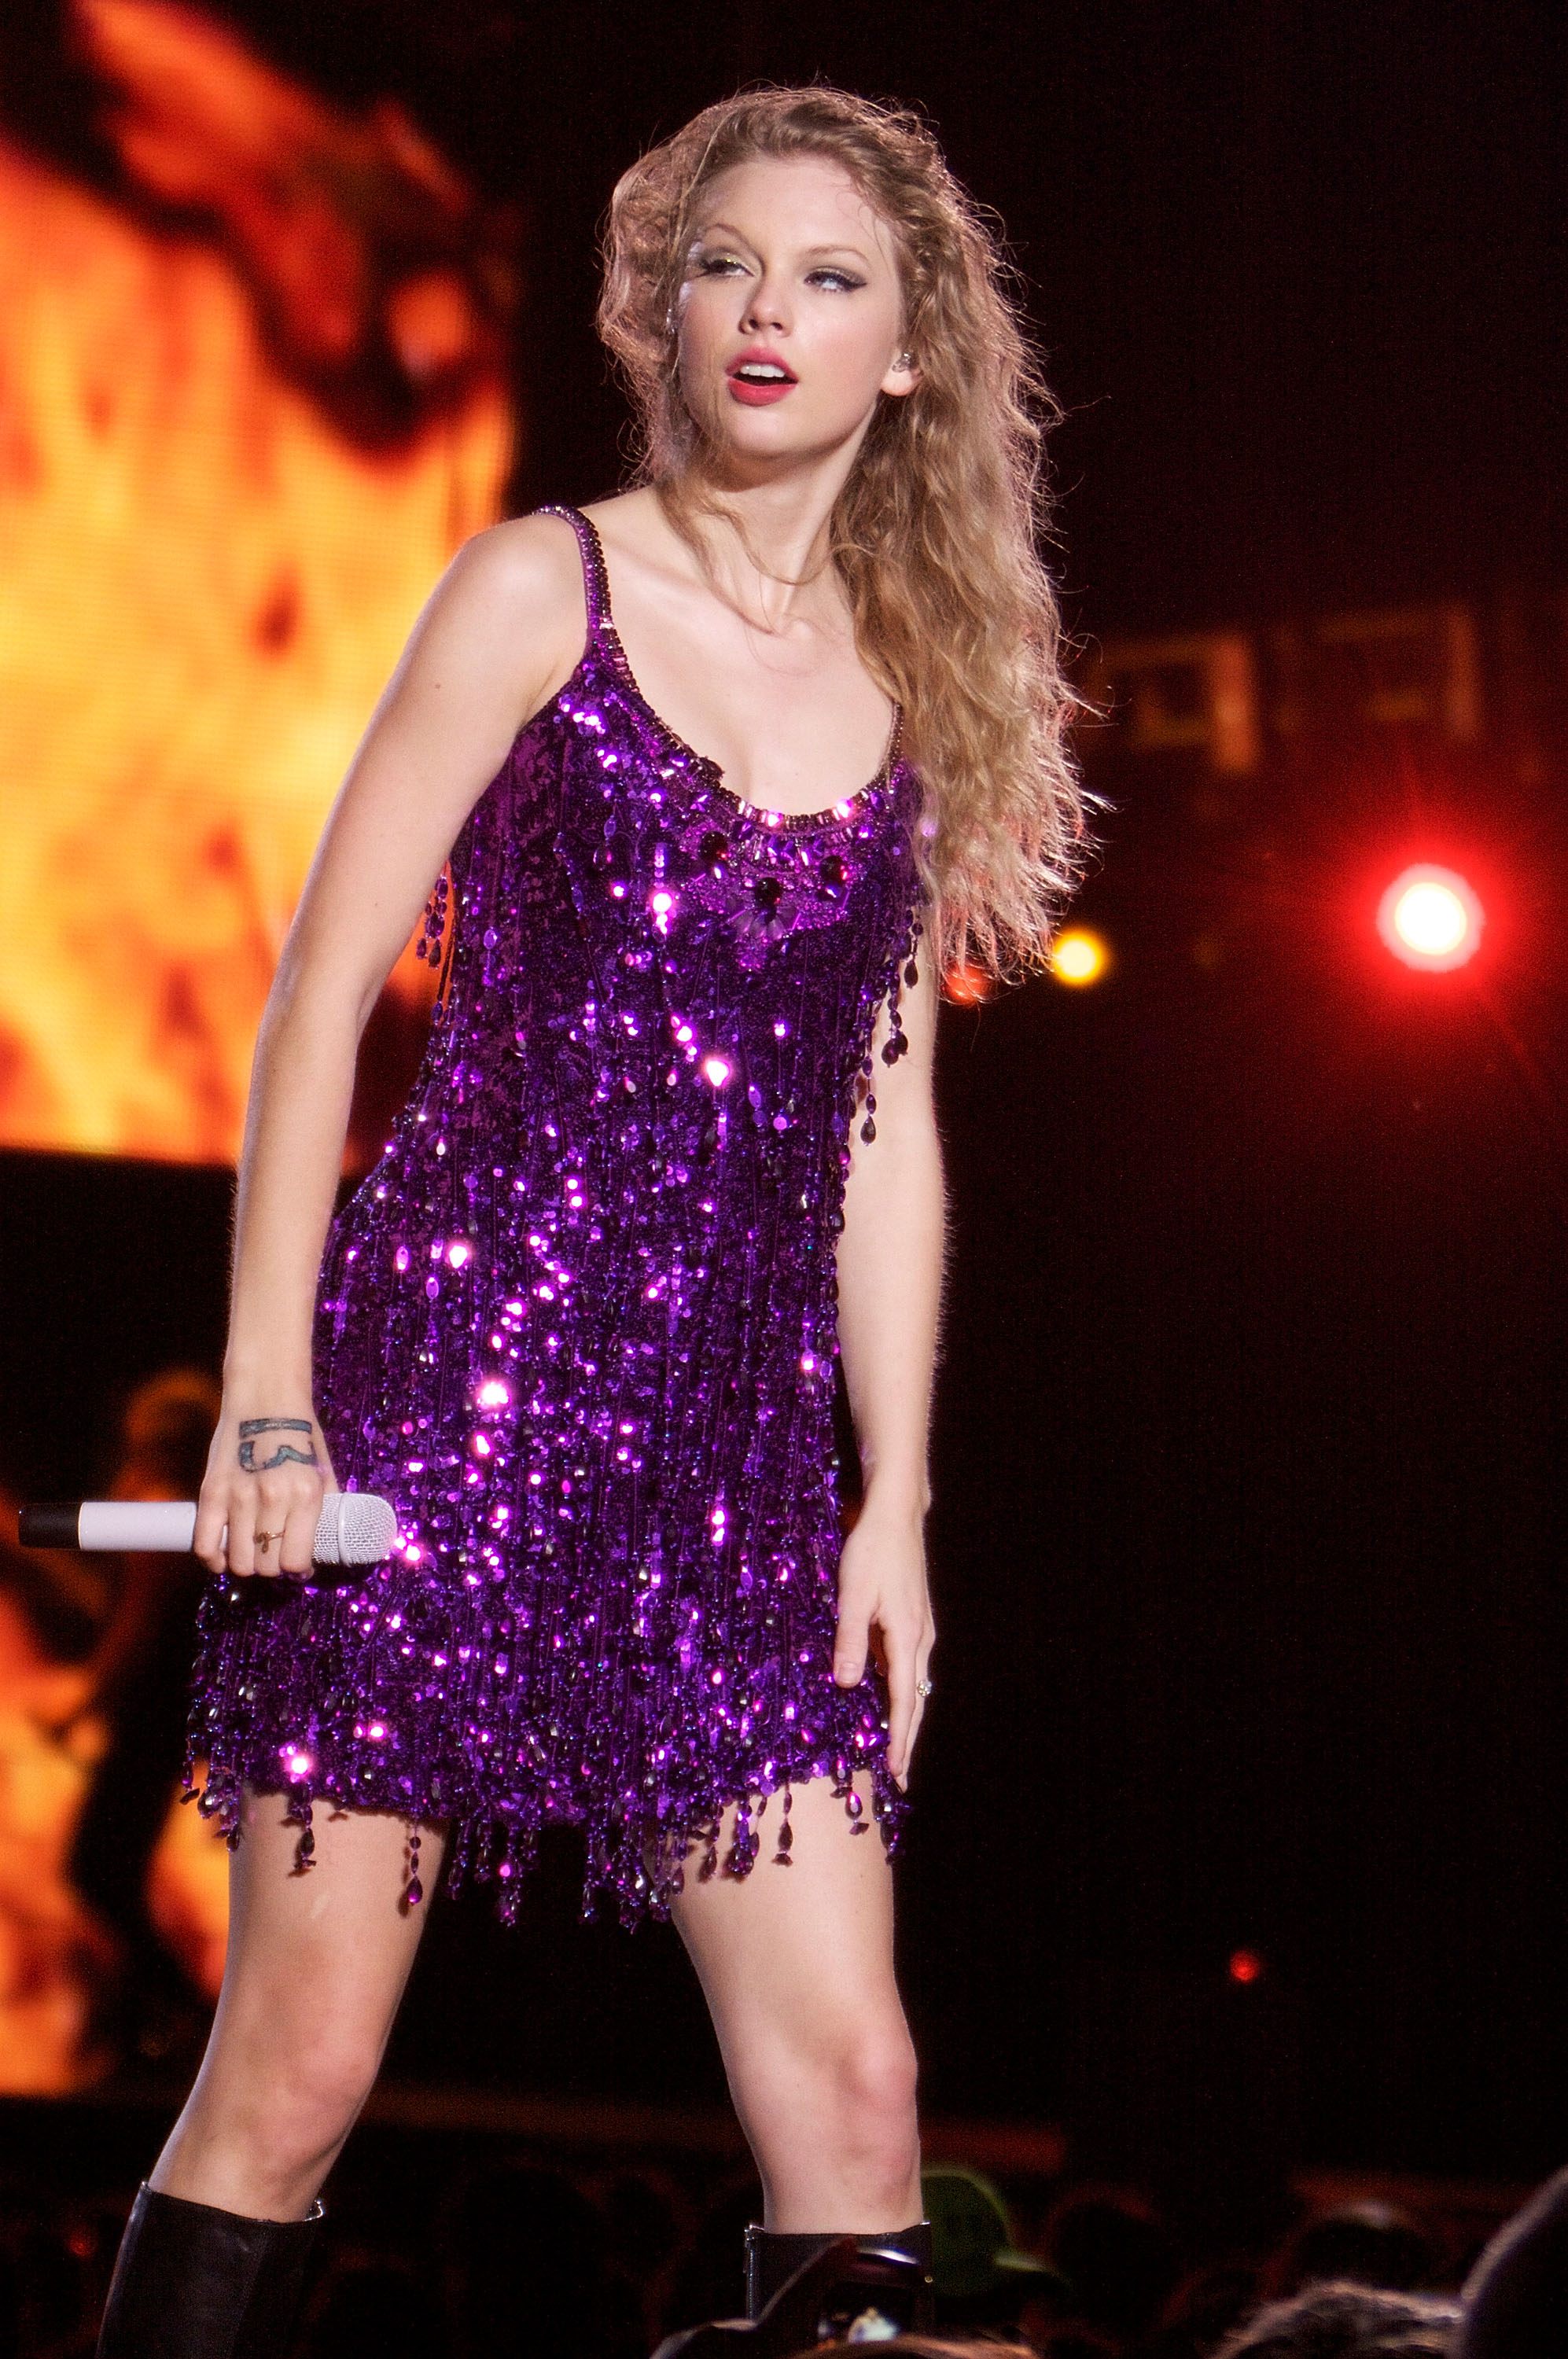 32489_Taylor_swift_performs_her_Fearless_Tour_at_Tiger_Stadium_001_122_1023lo.jpg